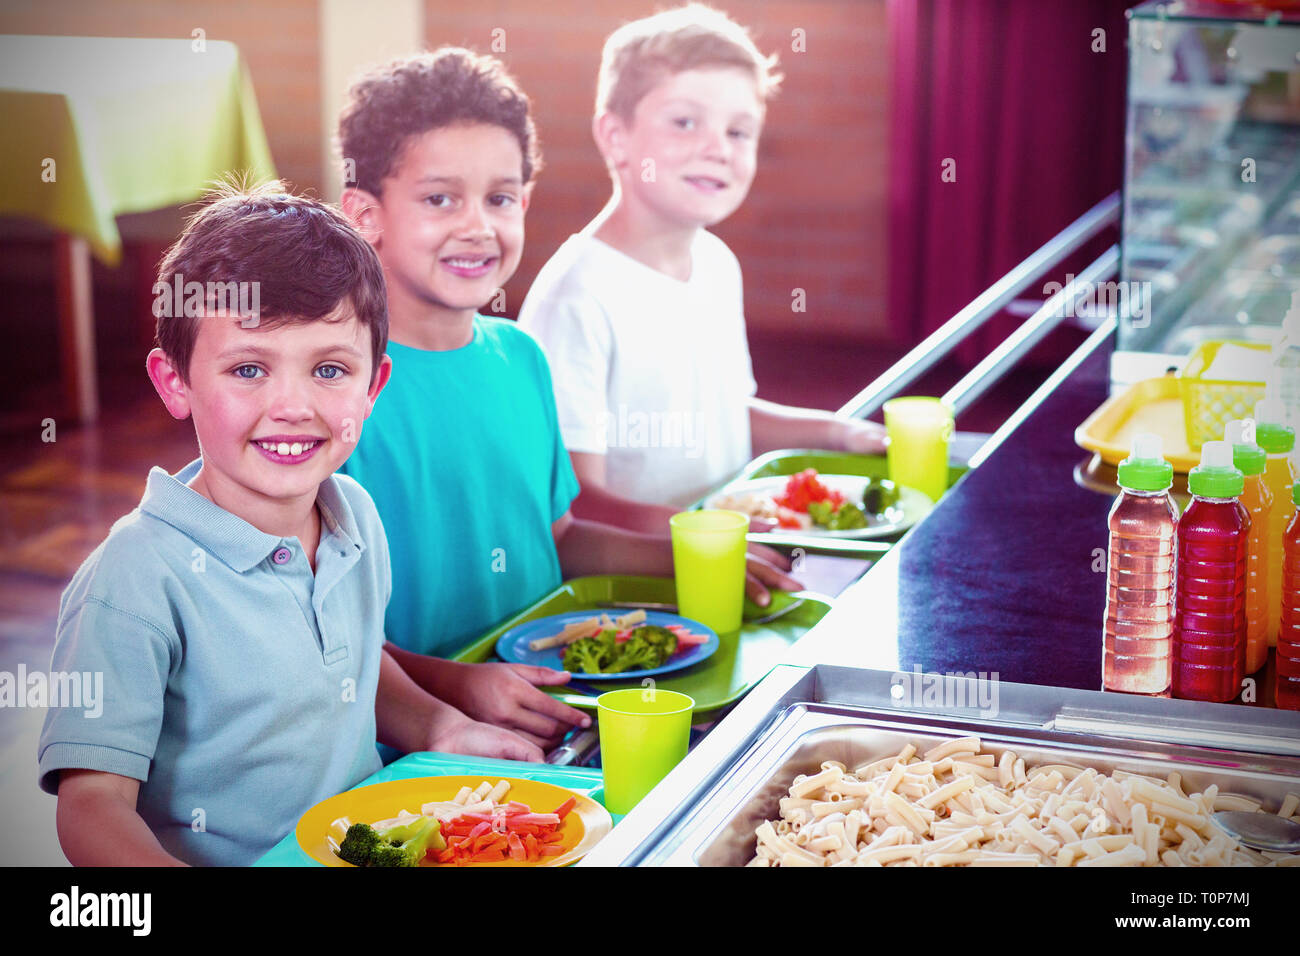 Schoolboys standing near counter Stock Photo